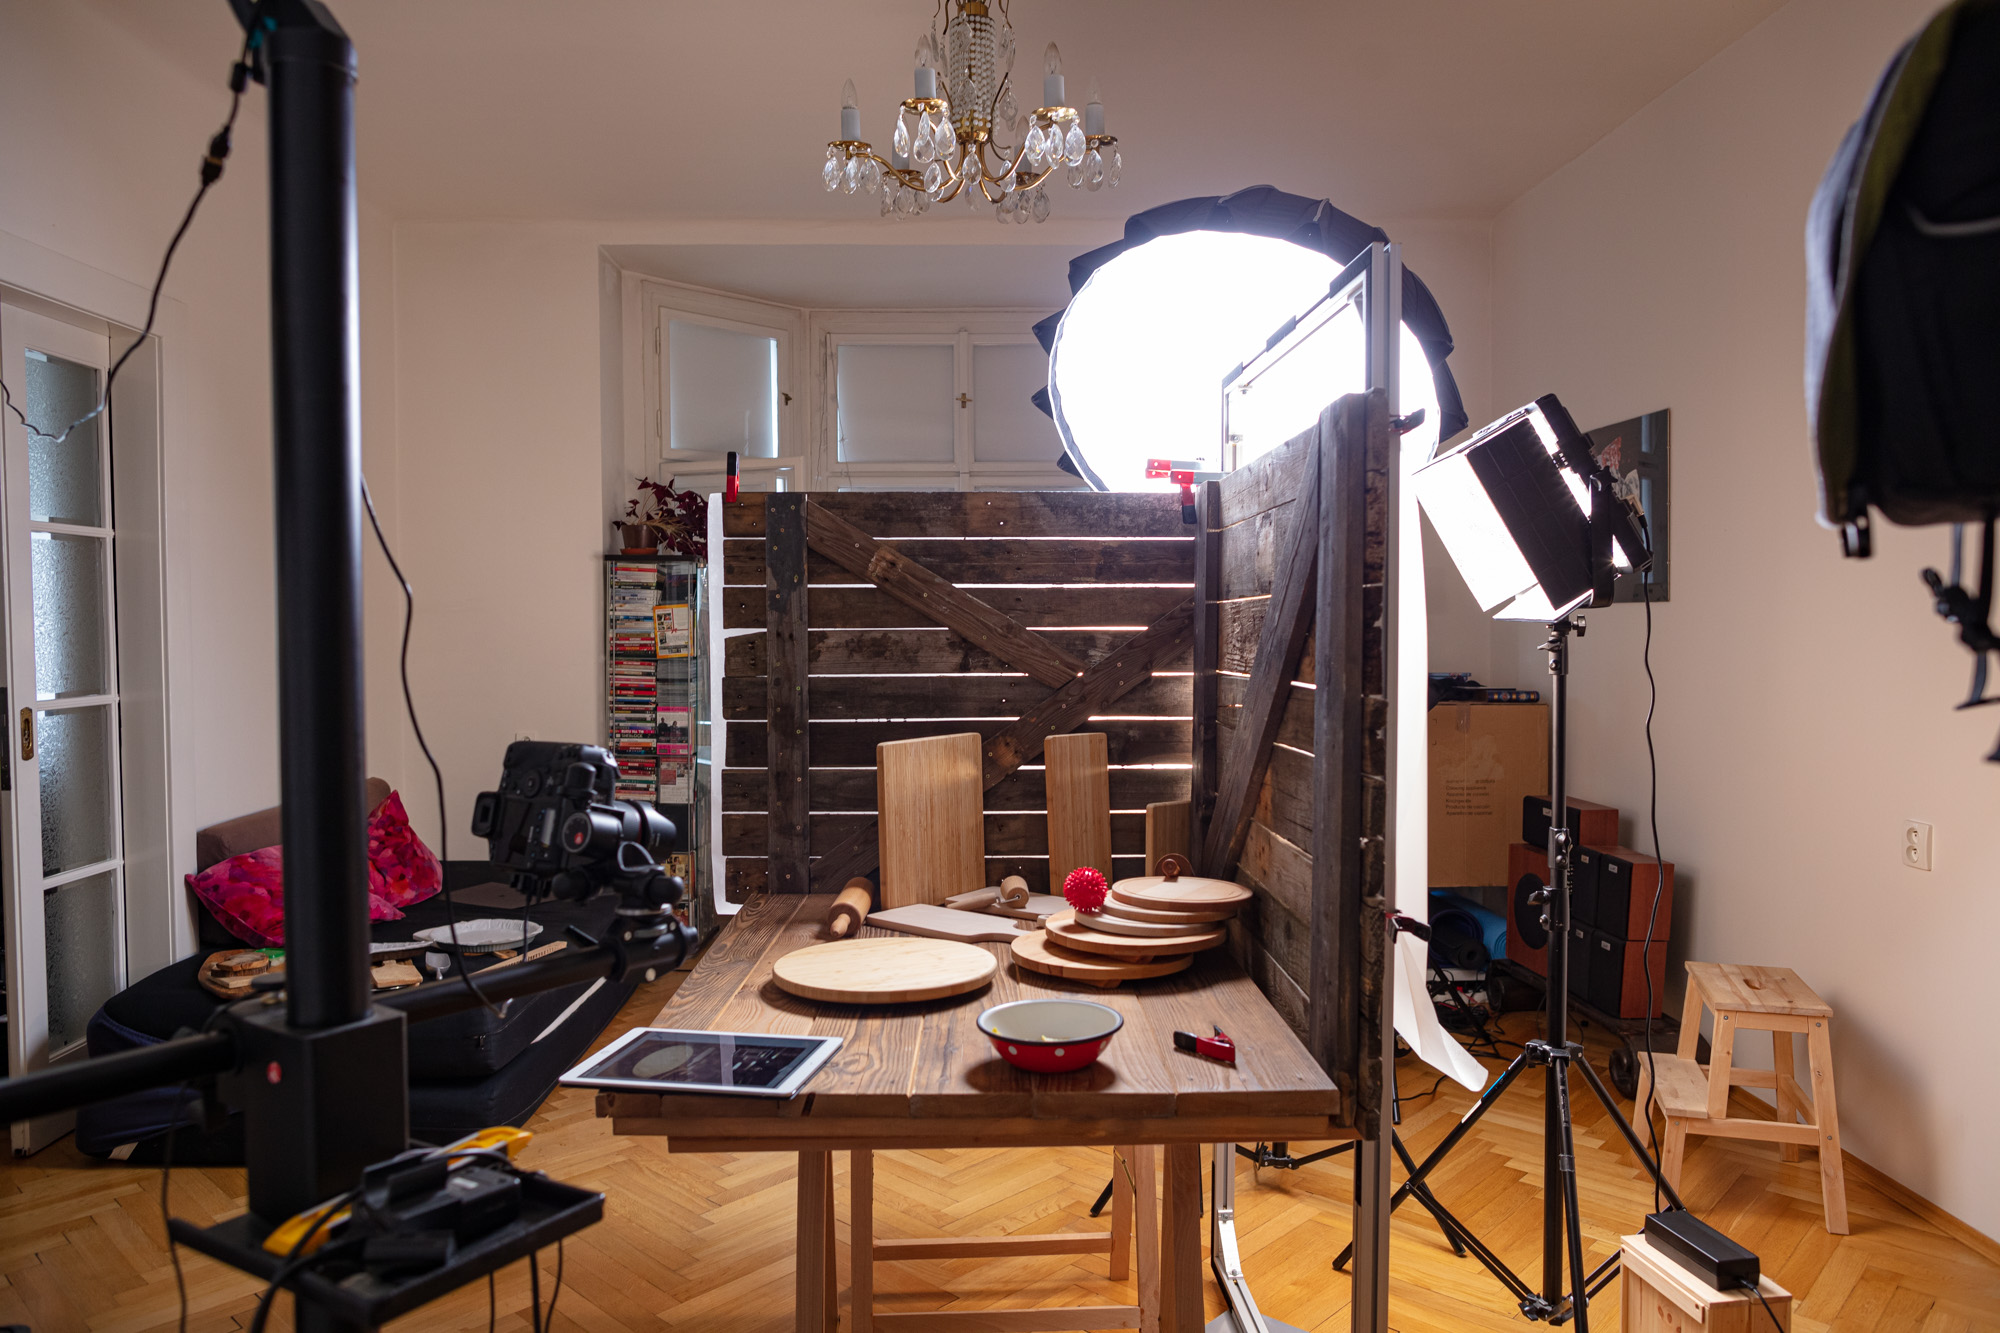 """Behind the scenes at the video production of """"Vegan Cherry Crumble Pie Recipe"""". A big table set up resembling a """"barn"""". In a studio with various lamps and cameras."""